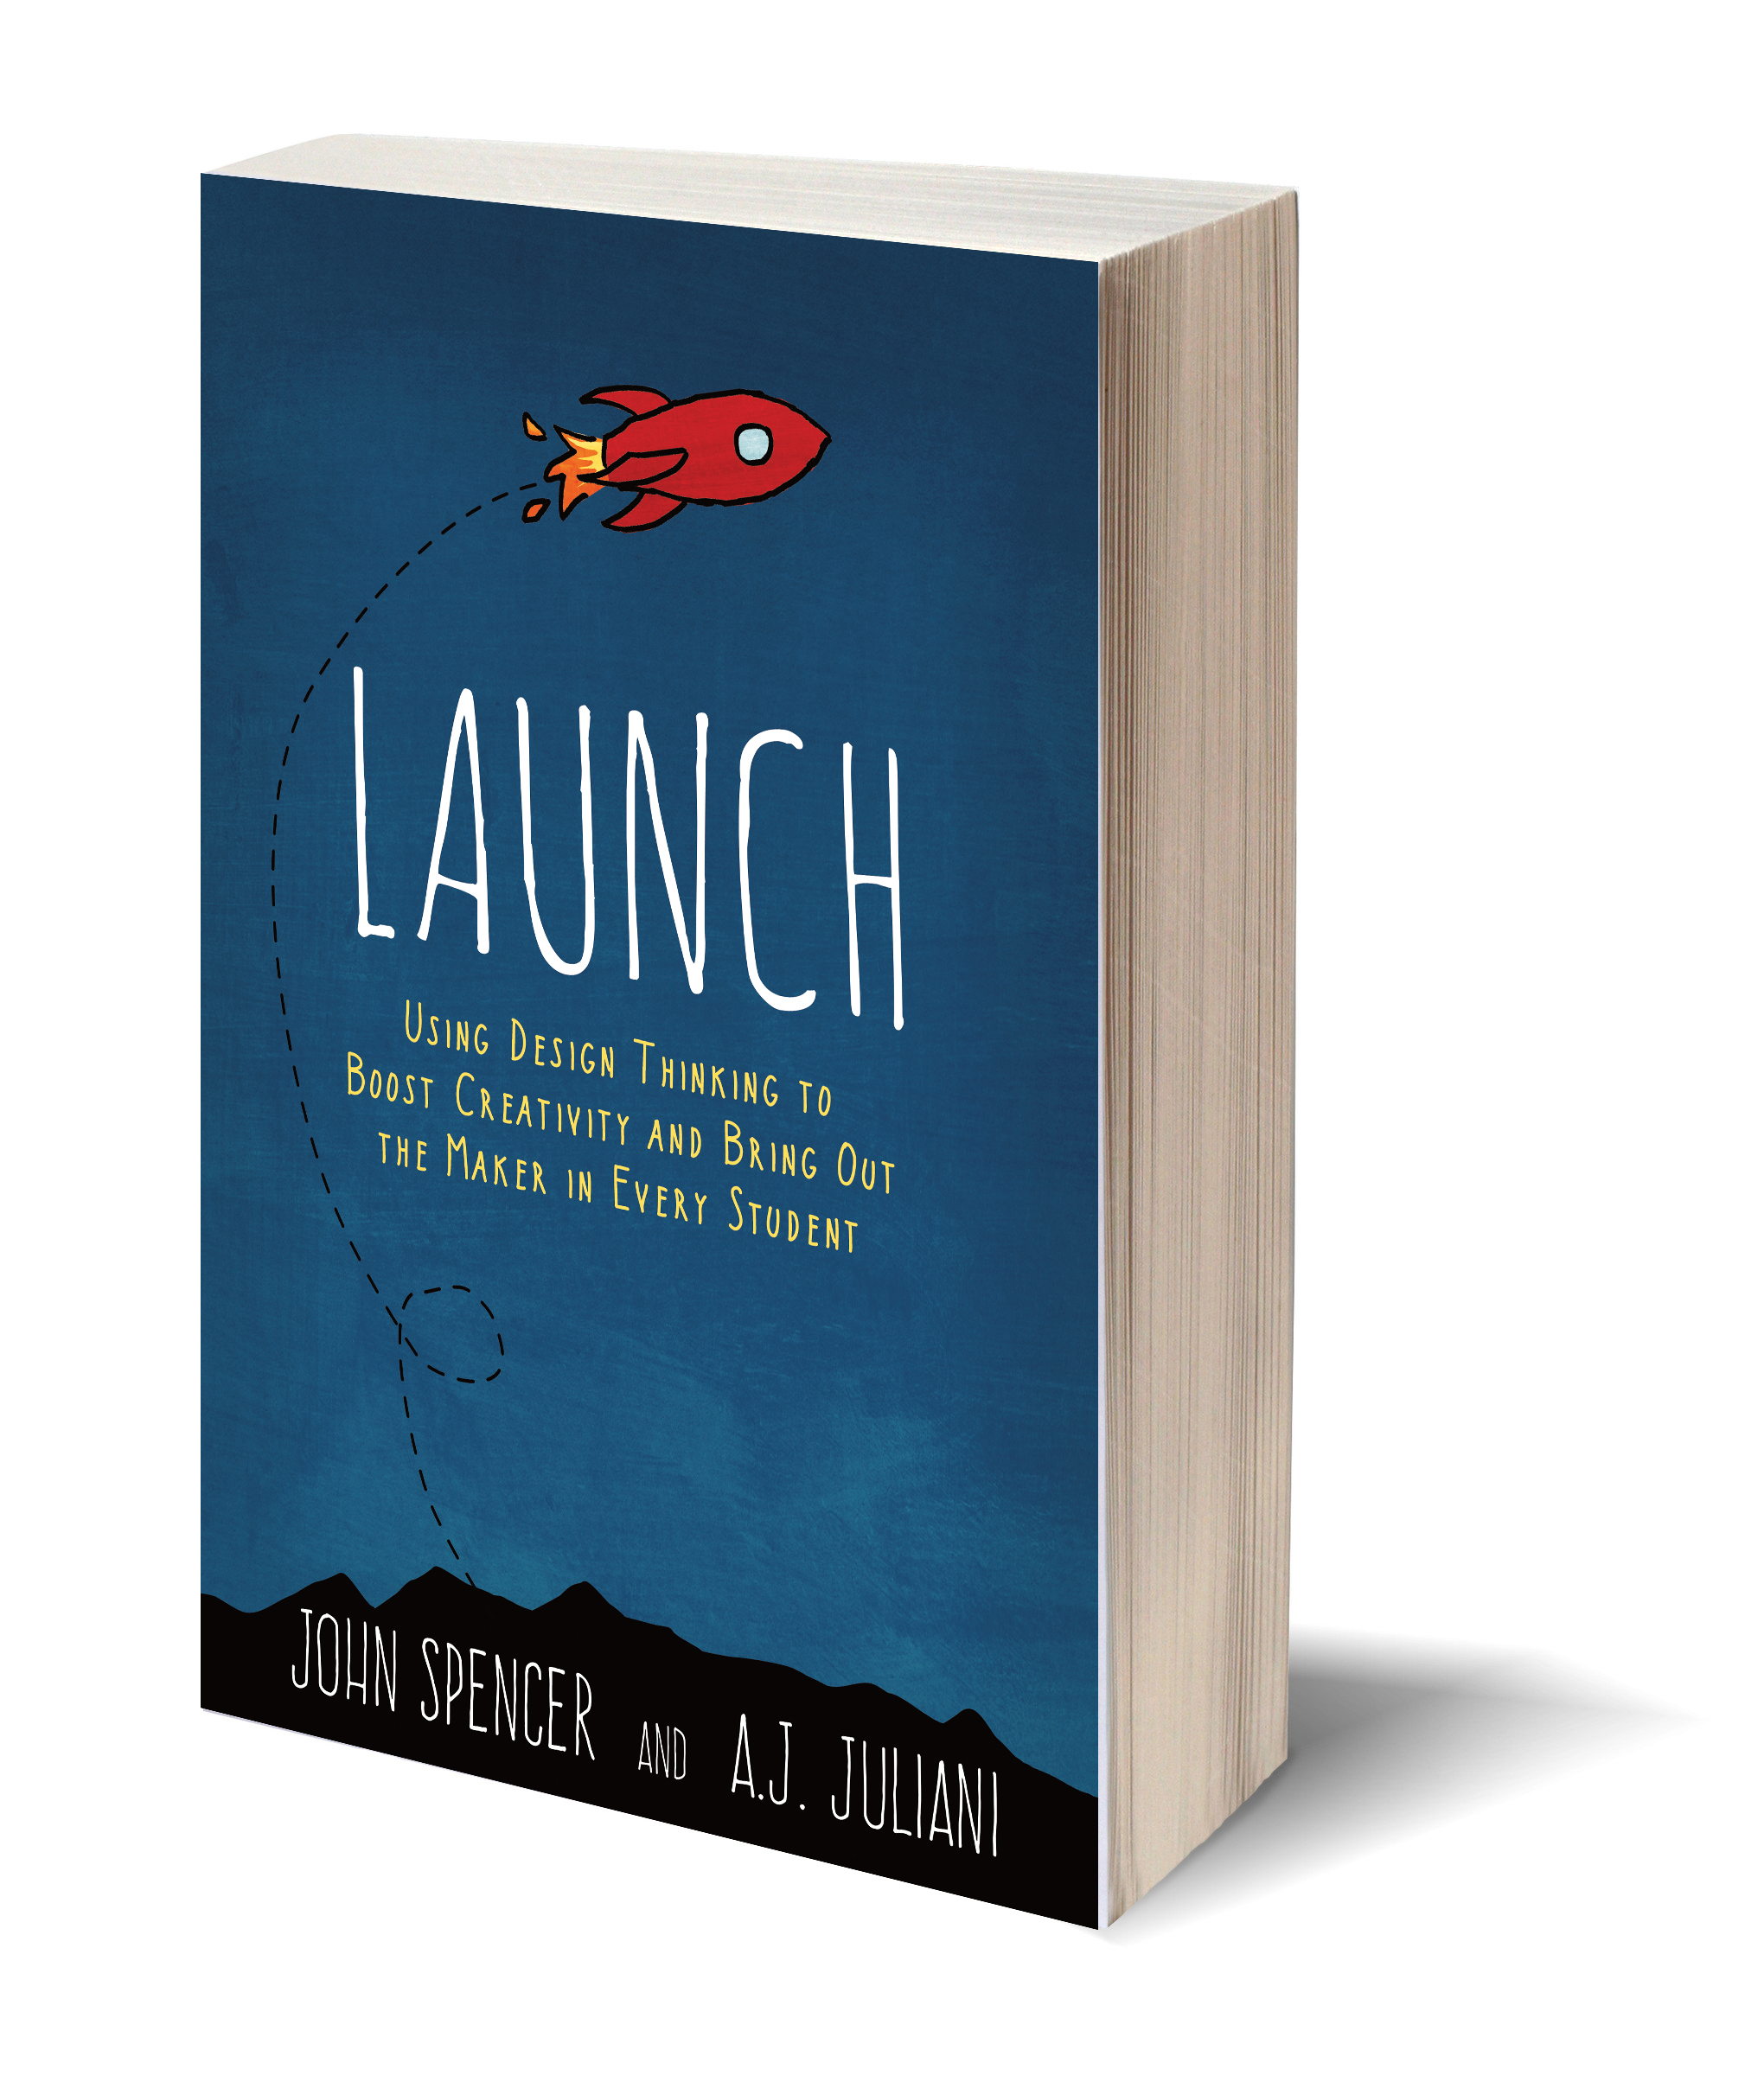 The Launch Cycle – Bring Out the Maker in Every Student